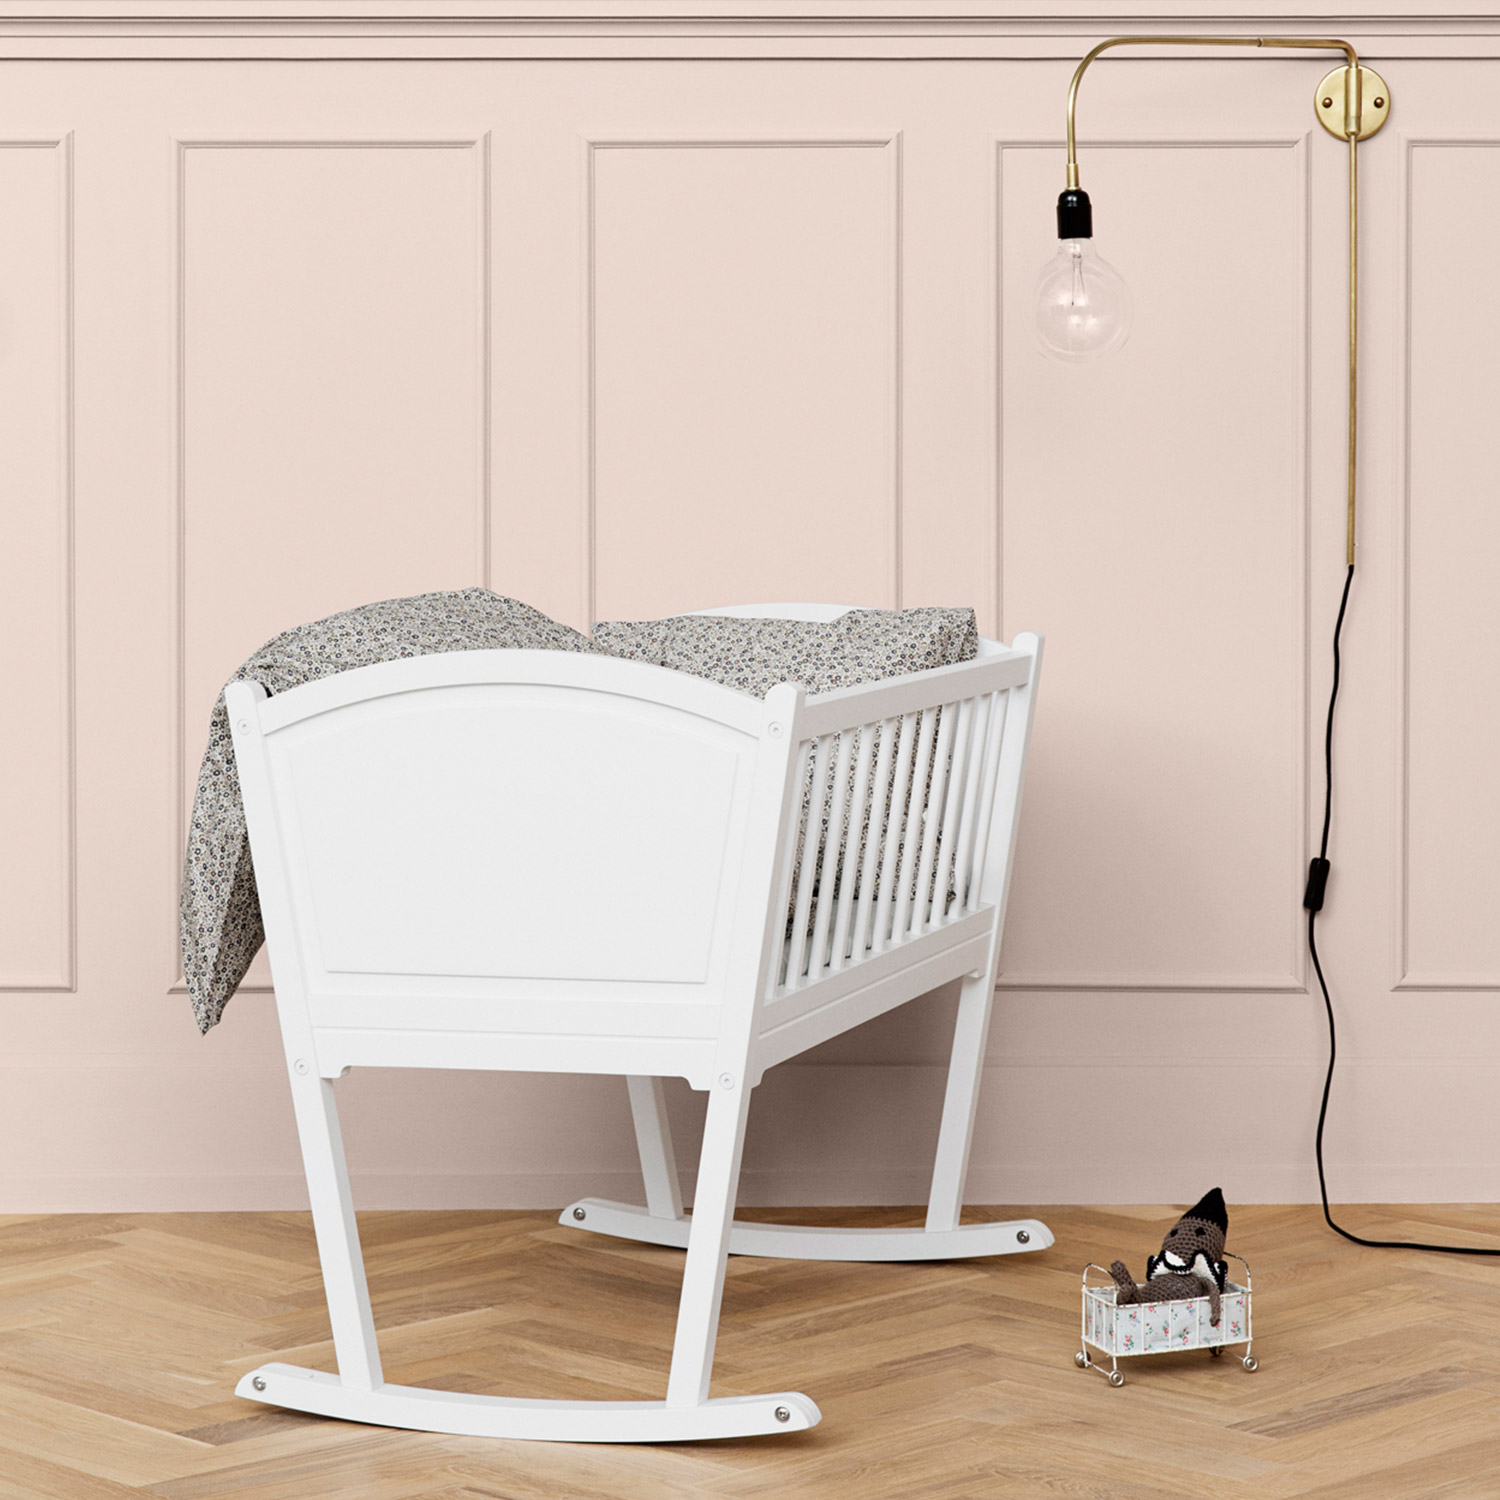 Oliver Furniture Wiege Babywiege